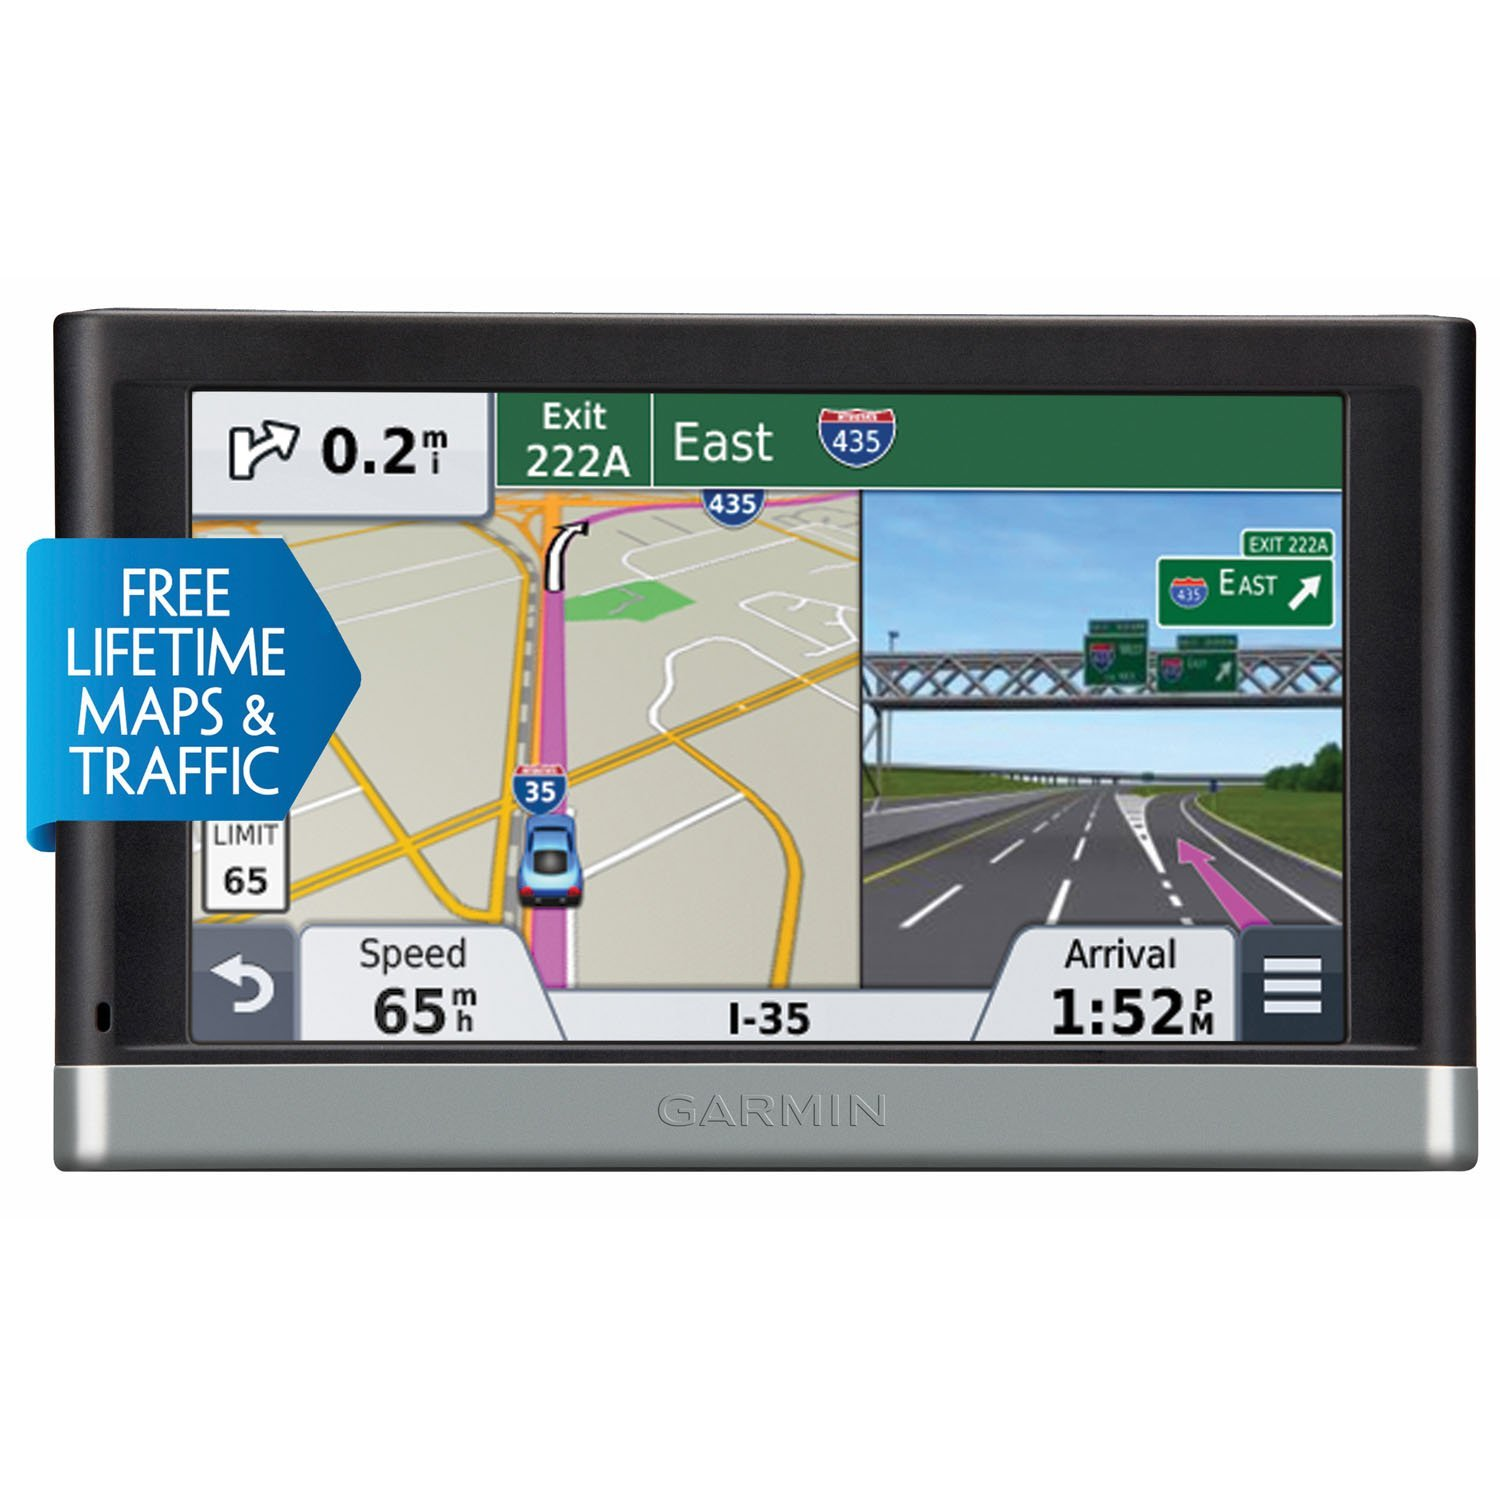 Garmin nüvi 2497LMT 4.3-Inch Portable Vehicle GPS